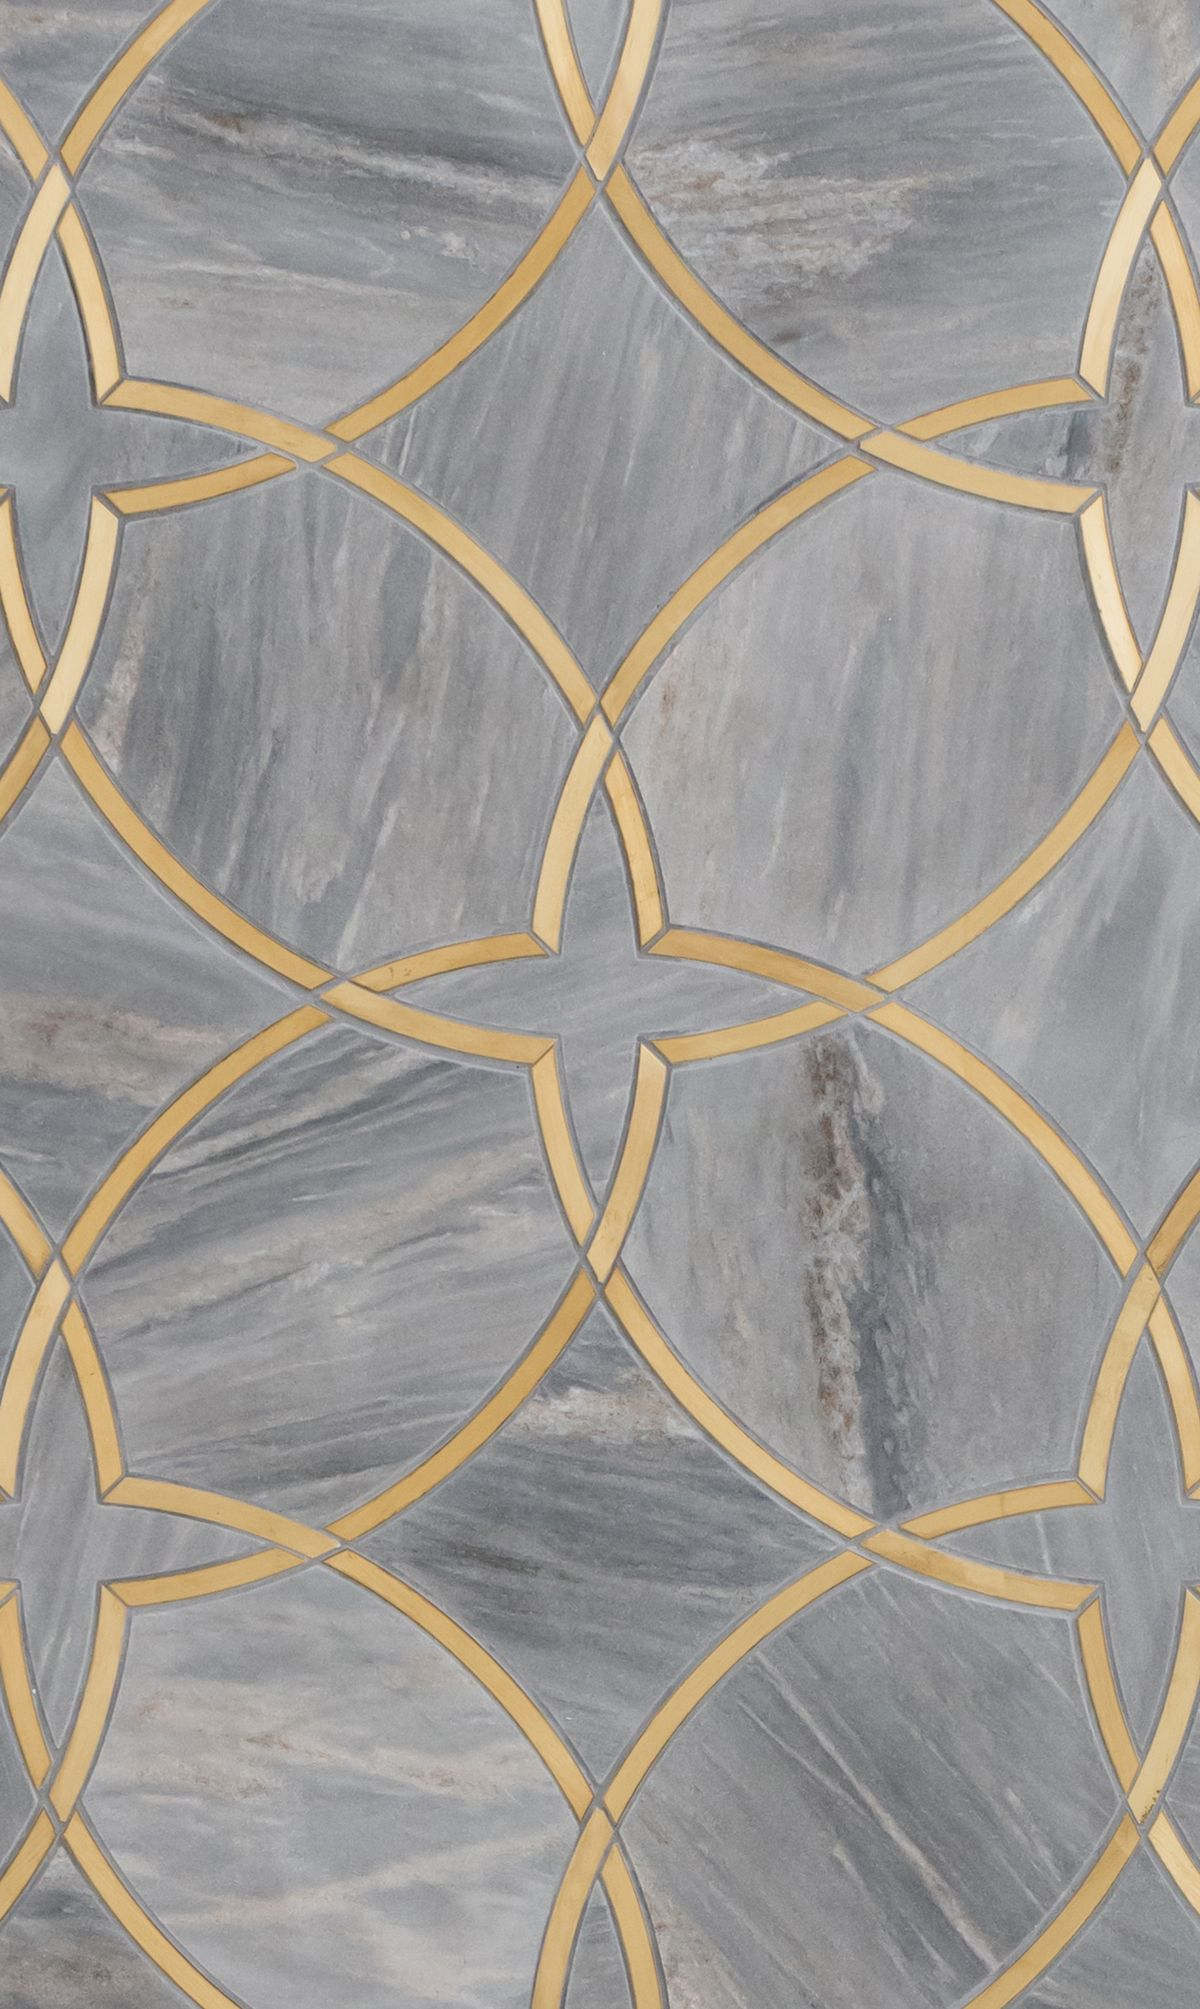 Inspiring pattern enafinejewelry theworldofenafj moscow petite water jet mosaic by mosaque surface over the top luxe glam tile pattern dailygadgetfo Gallery